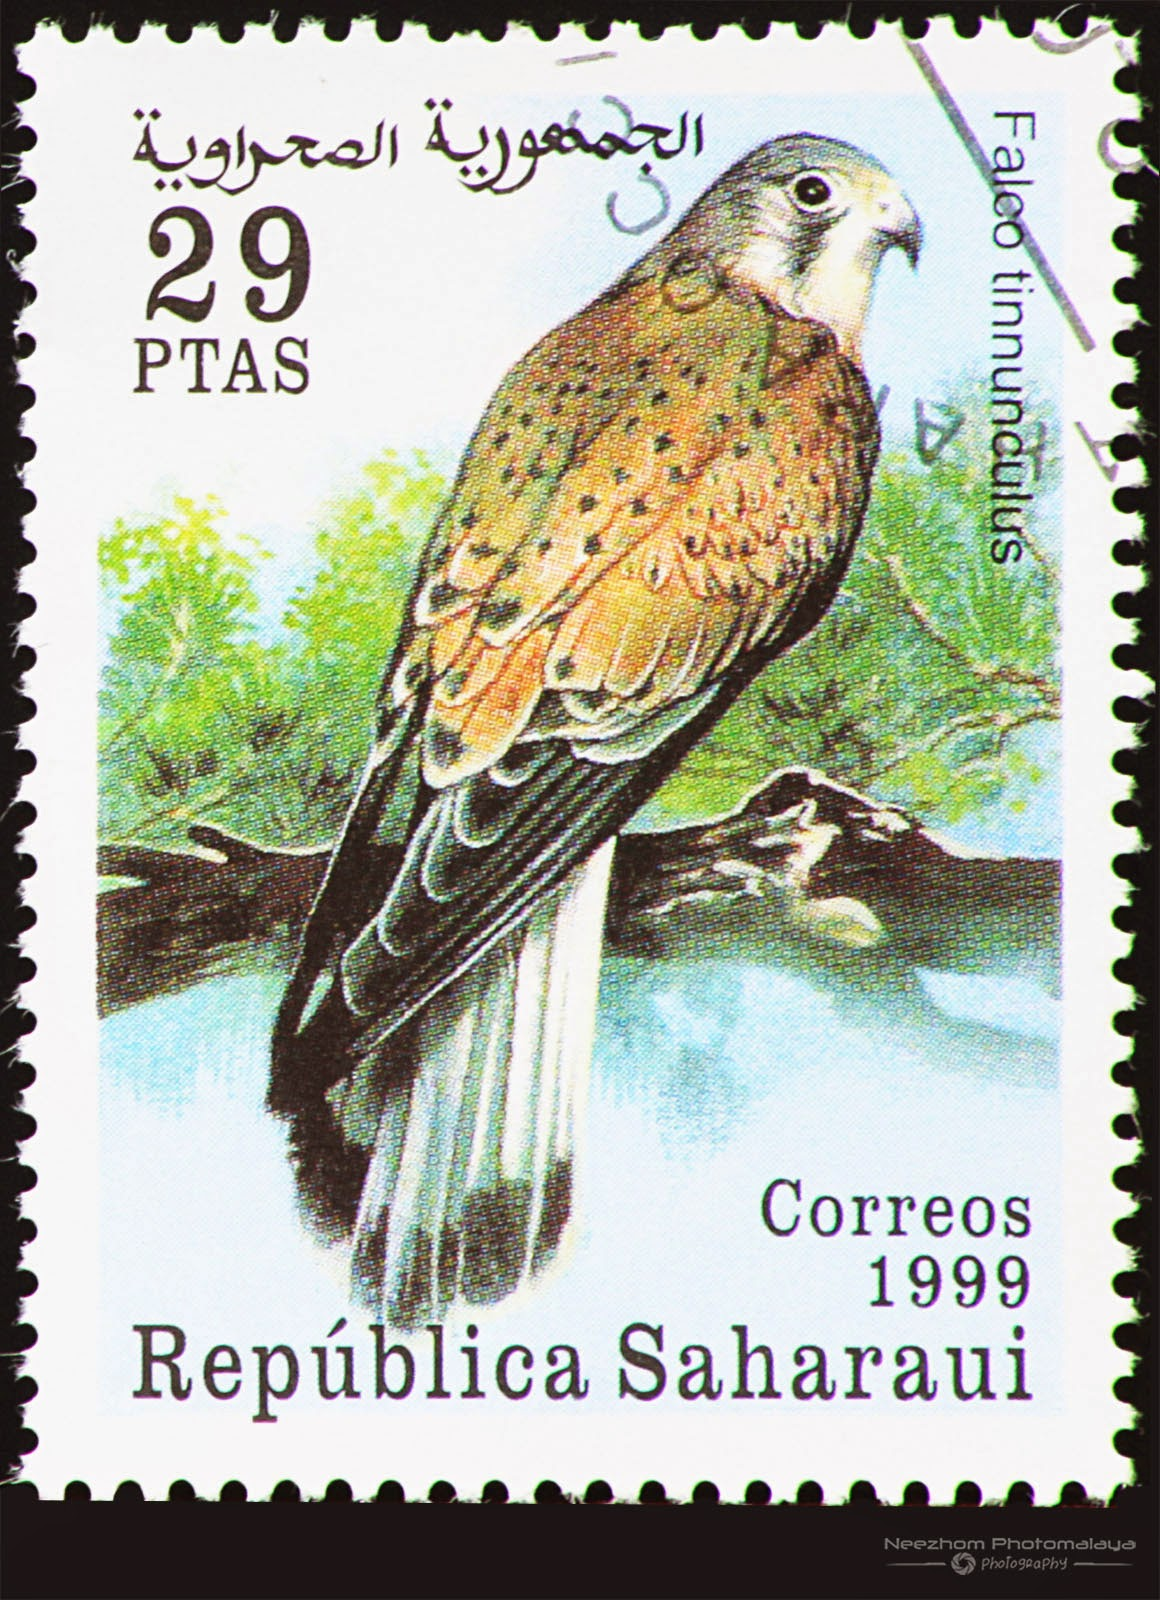 Western Sahara 1999 Birds of Prey stamp - Common Kestrel (Falco tinnunculus) 29 ptas